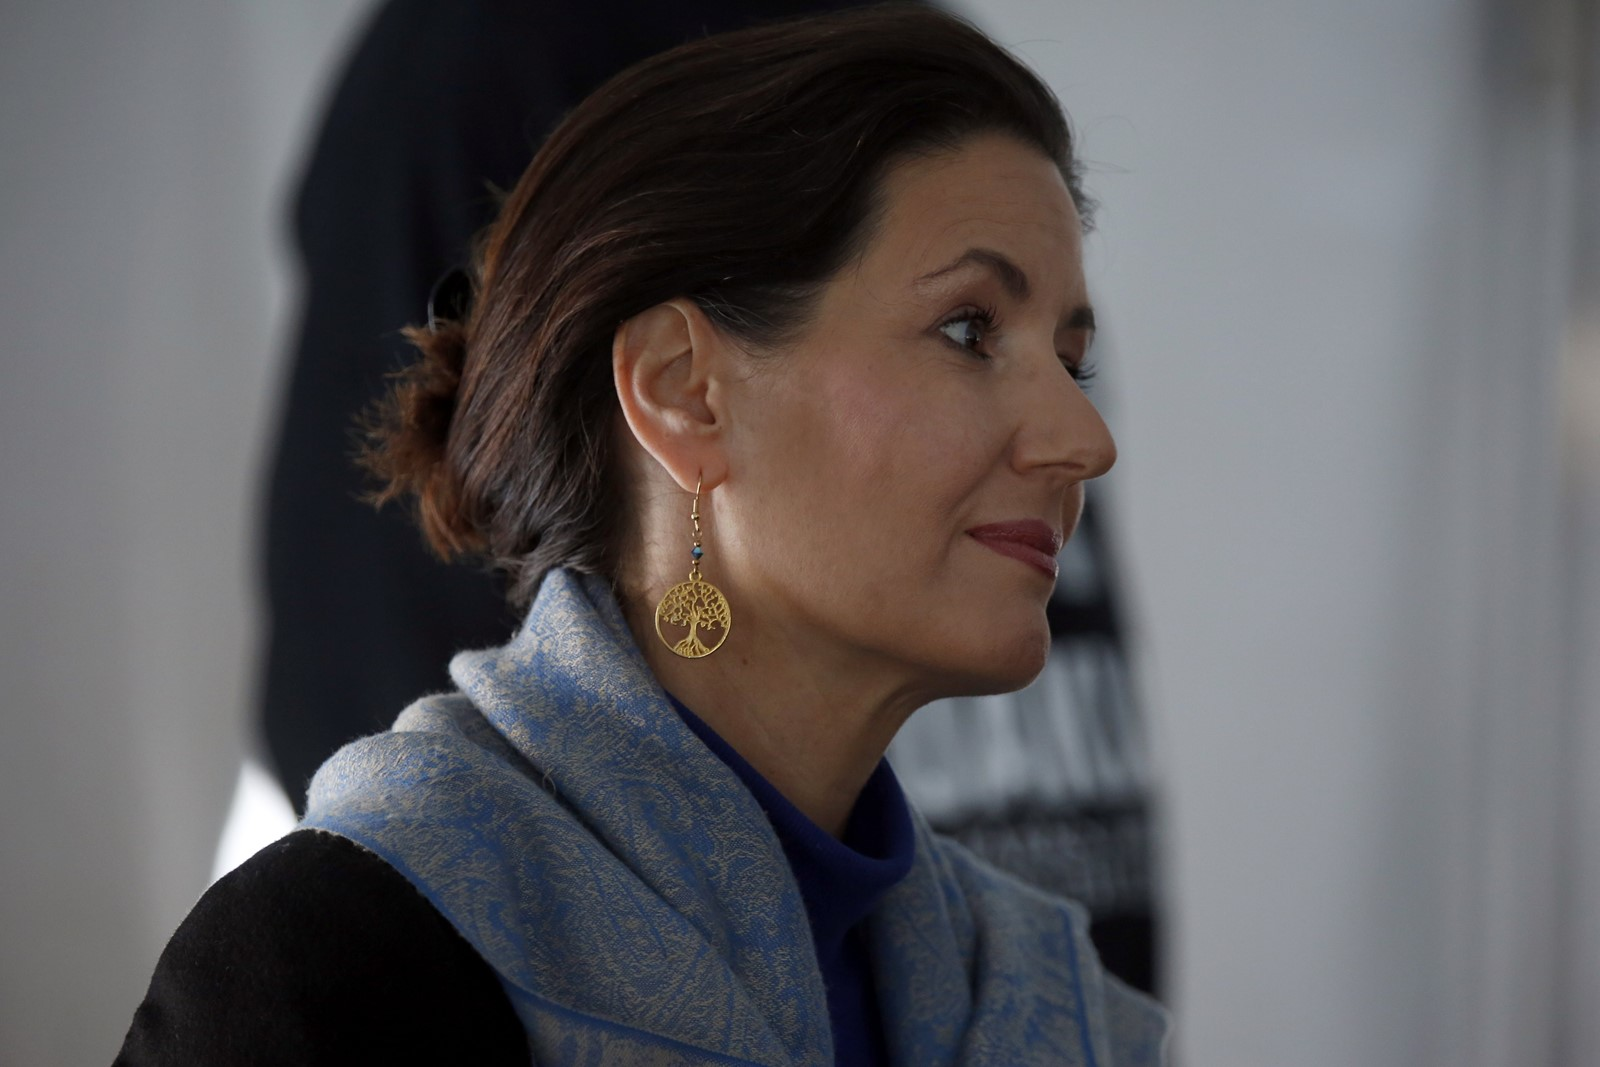 Mayor  Libby Schaaf drew President Donald J. Trump's ire after she warned Oakland of an impending ICE raid. — Photograph: Francine Orr/Los Angeles Times.